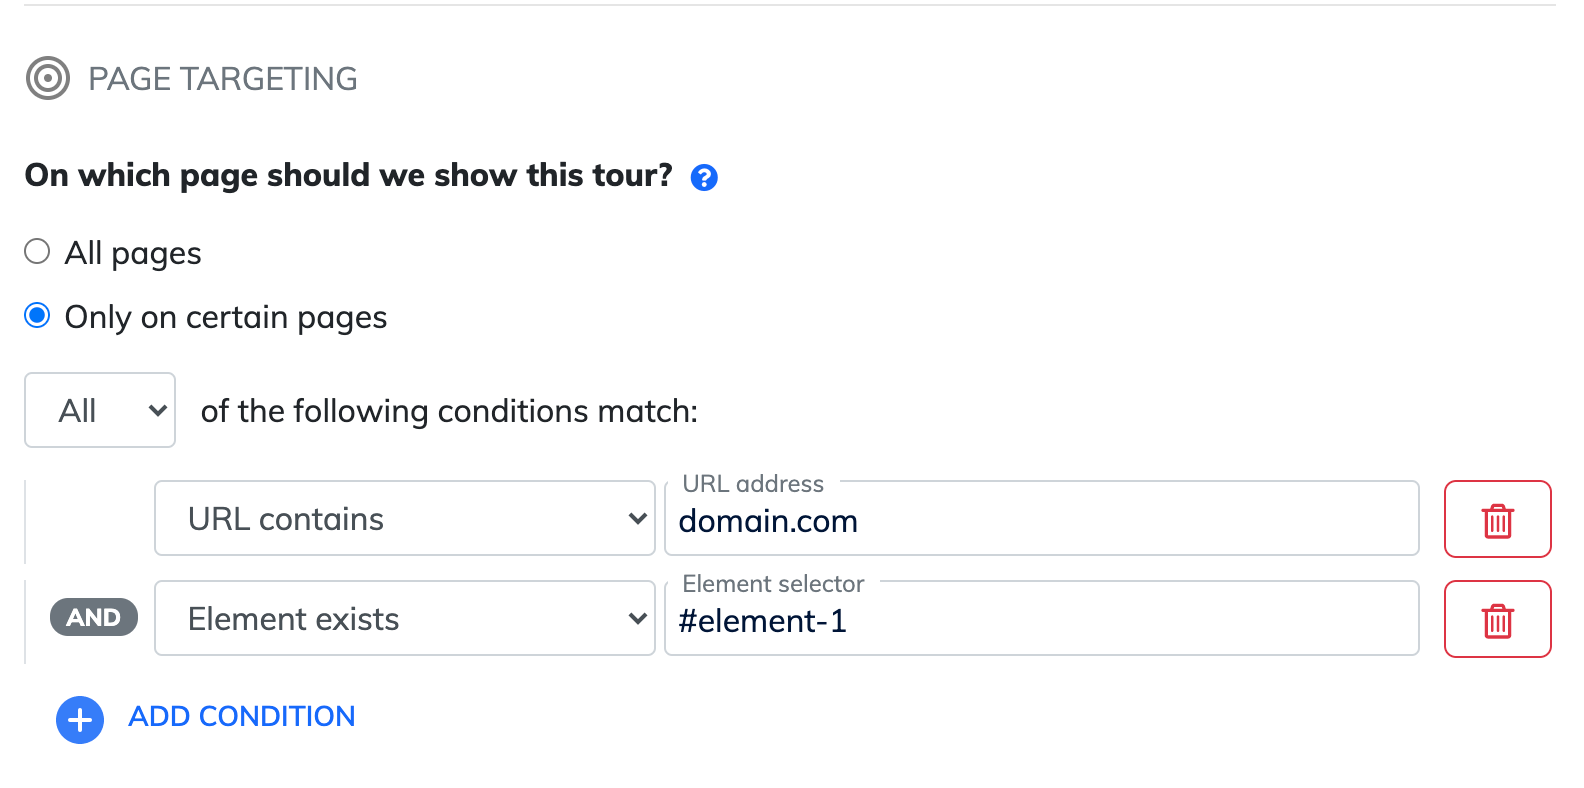 Page targeting product tours